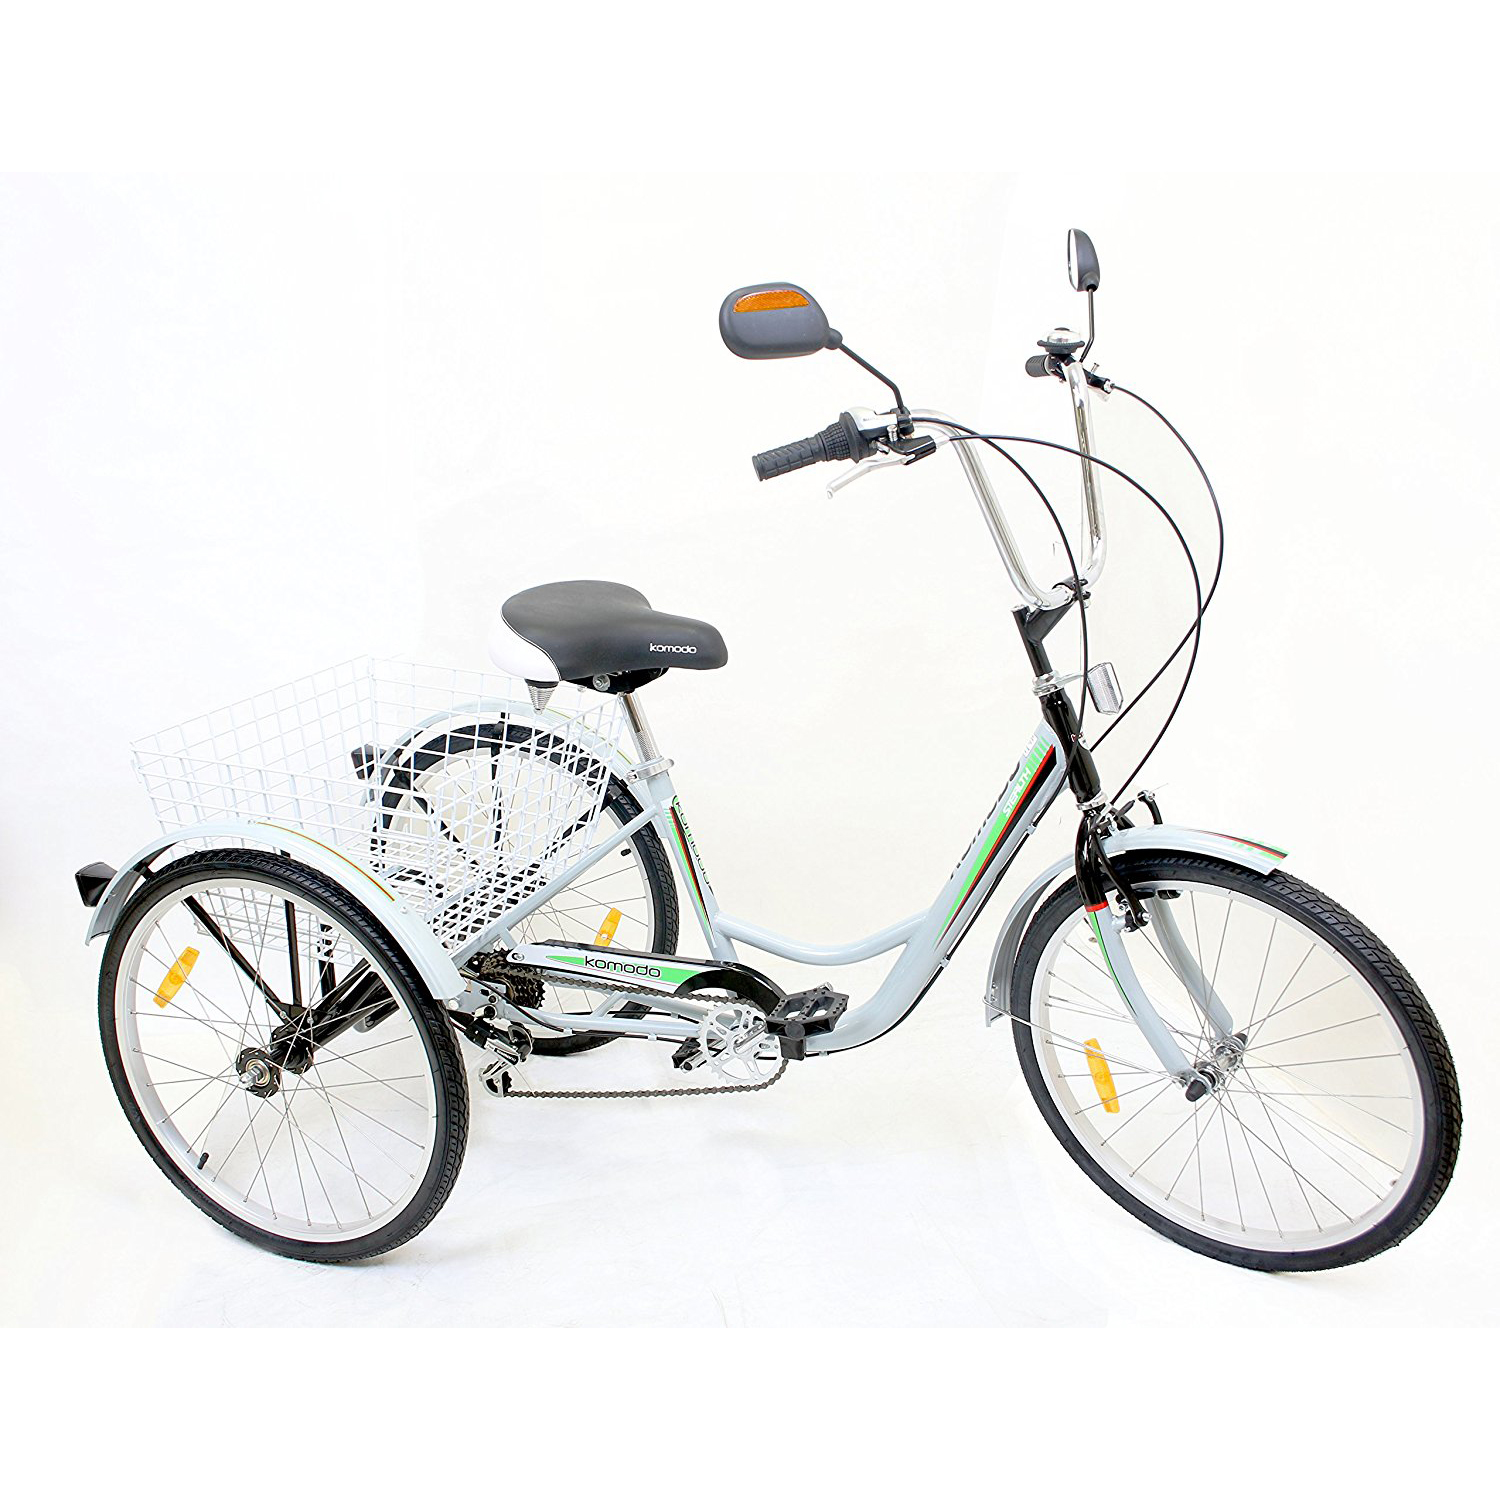 "Komodo Cycling ATSTEALTH 24"", 6-speed Adult Tricycle 7004 – Stealth"